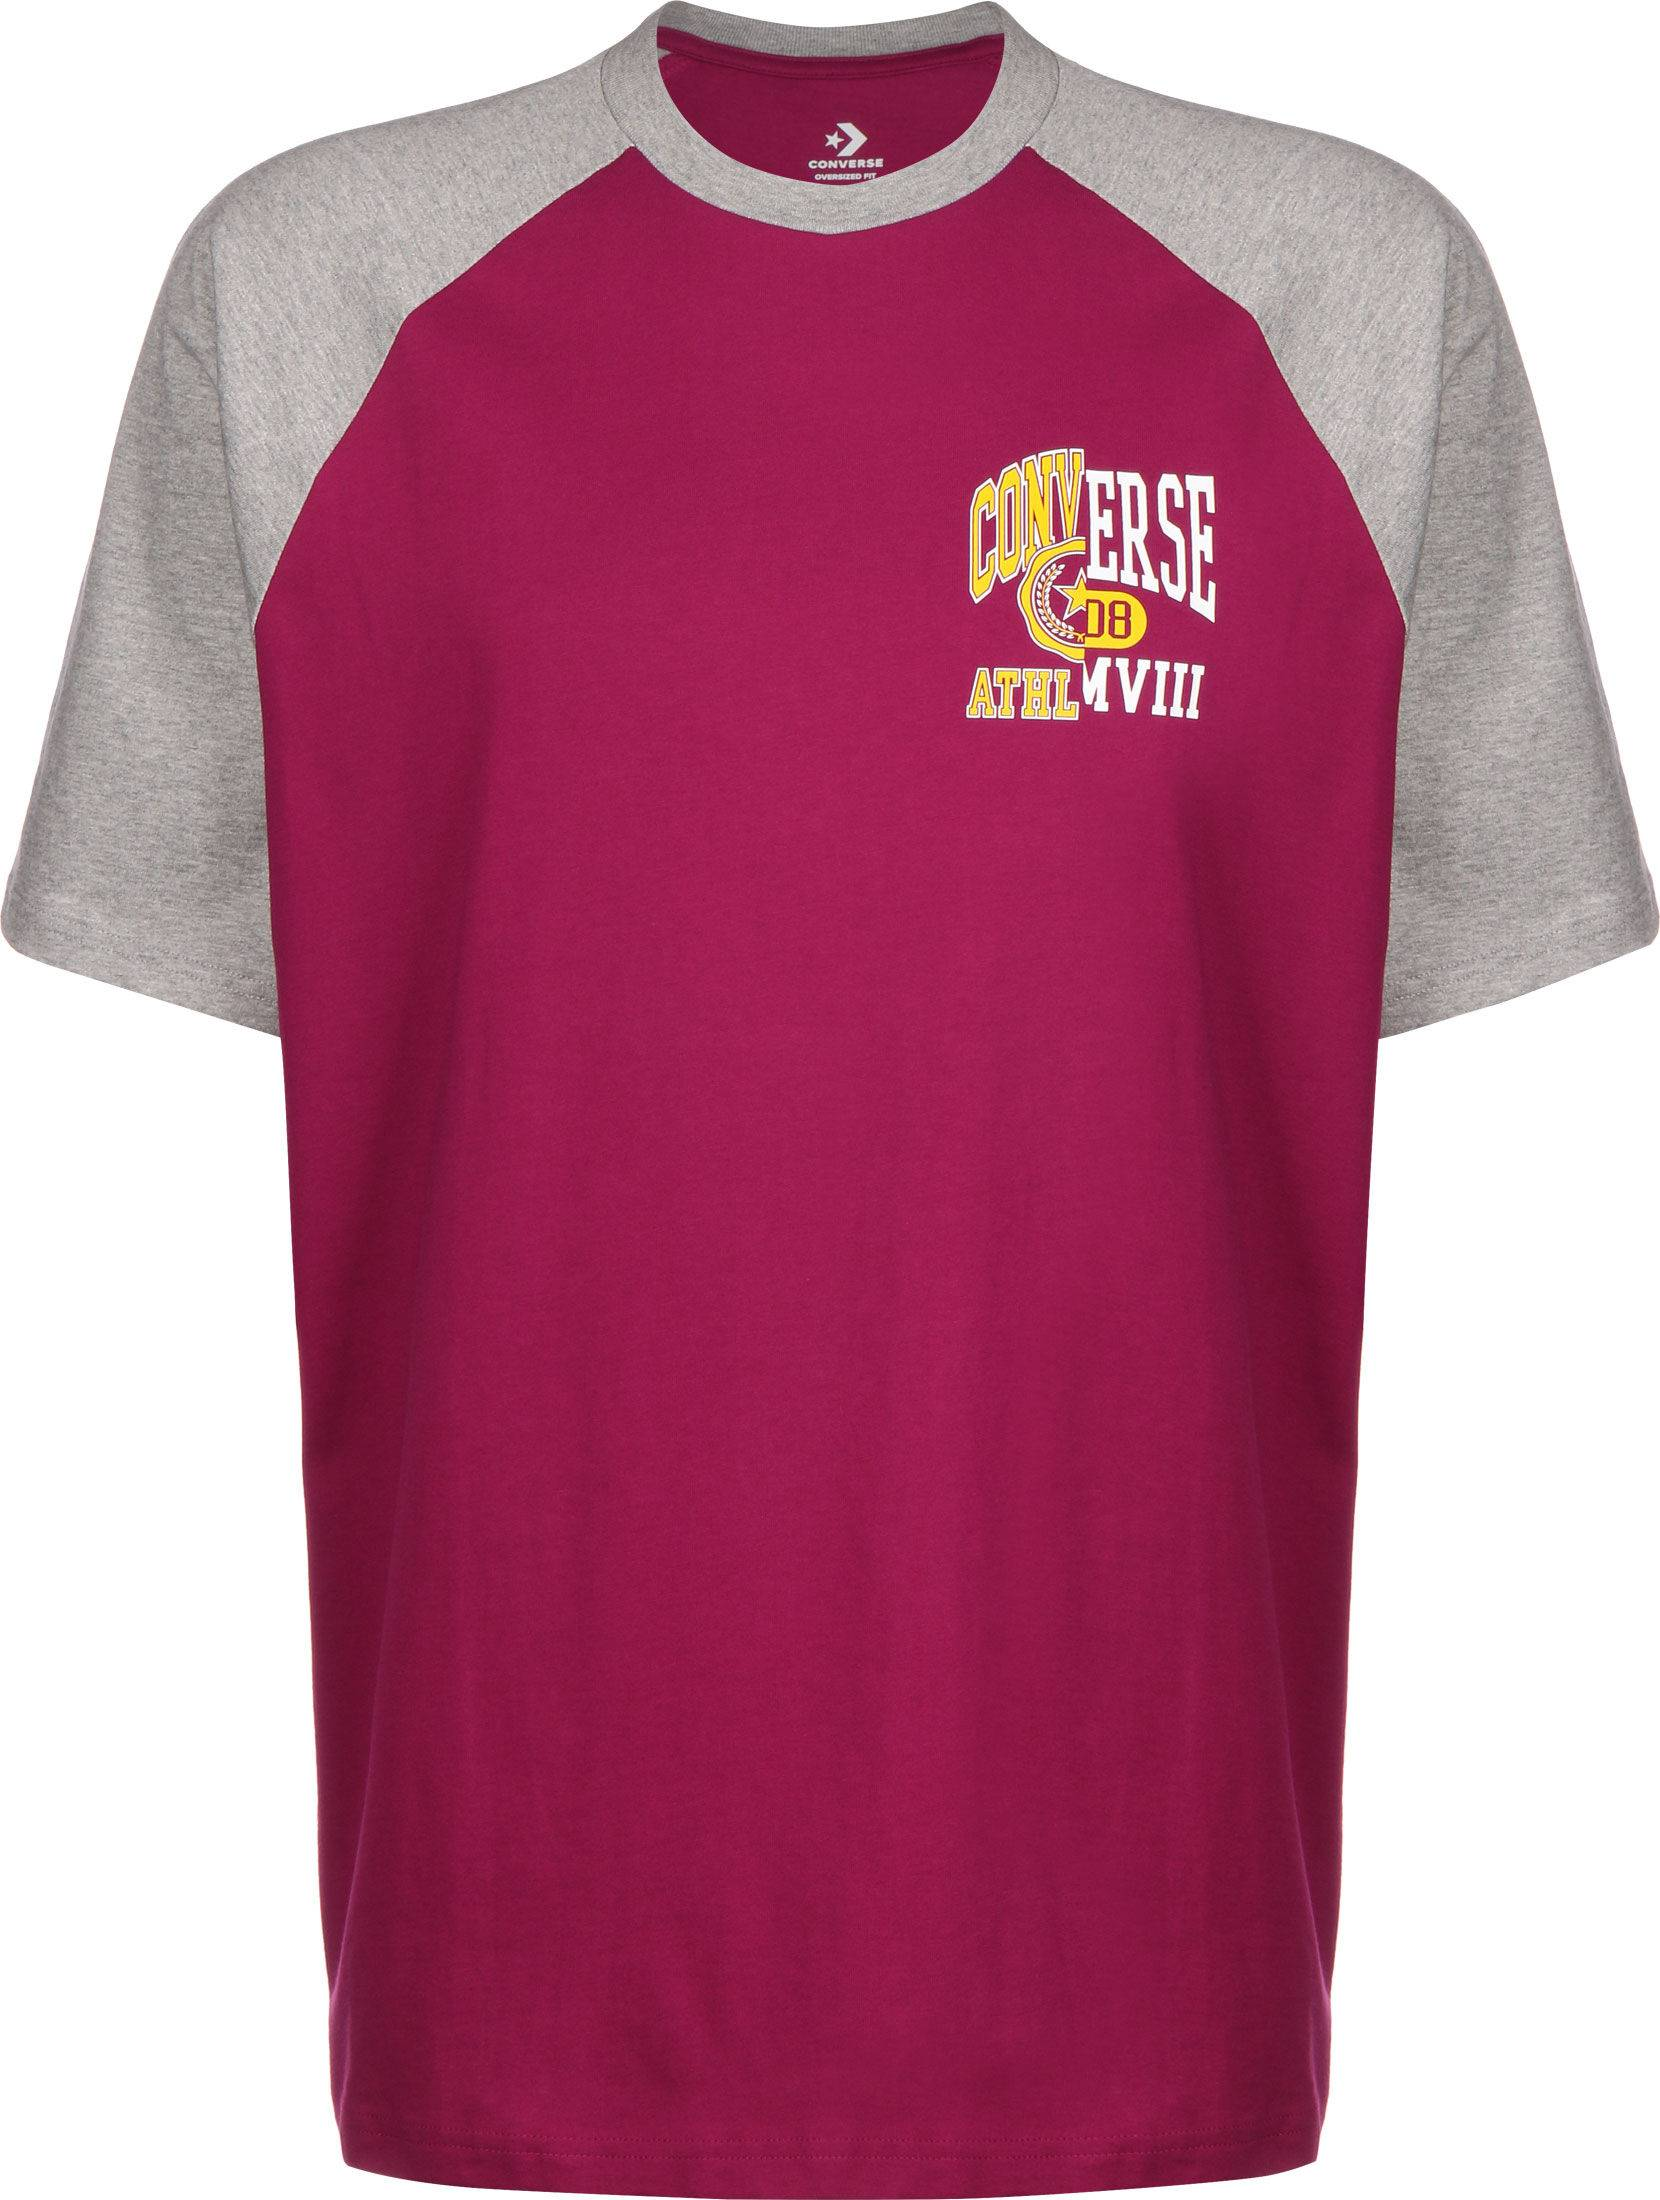 Converse Icon Remix Raglan, taille S, homme, rose